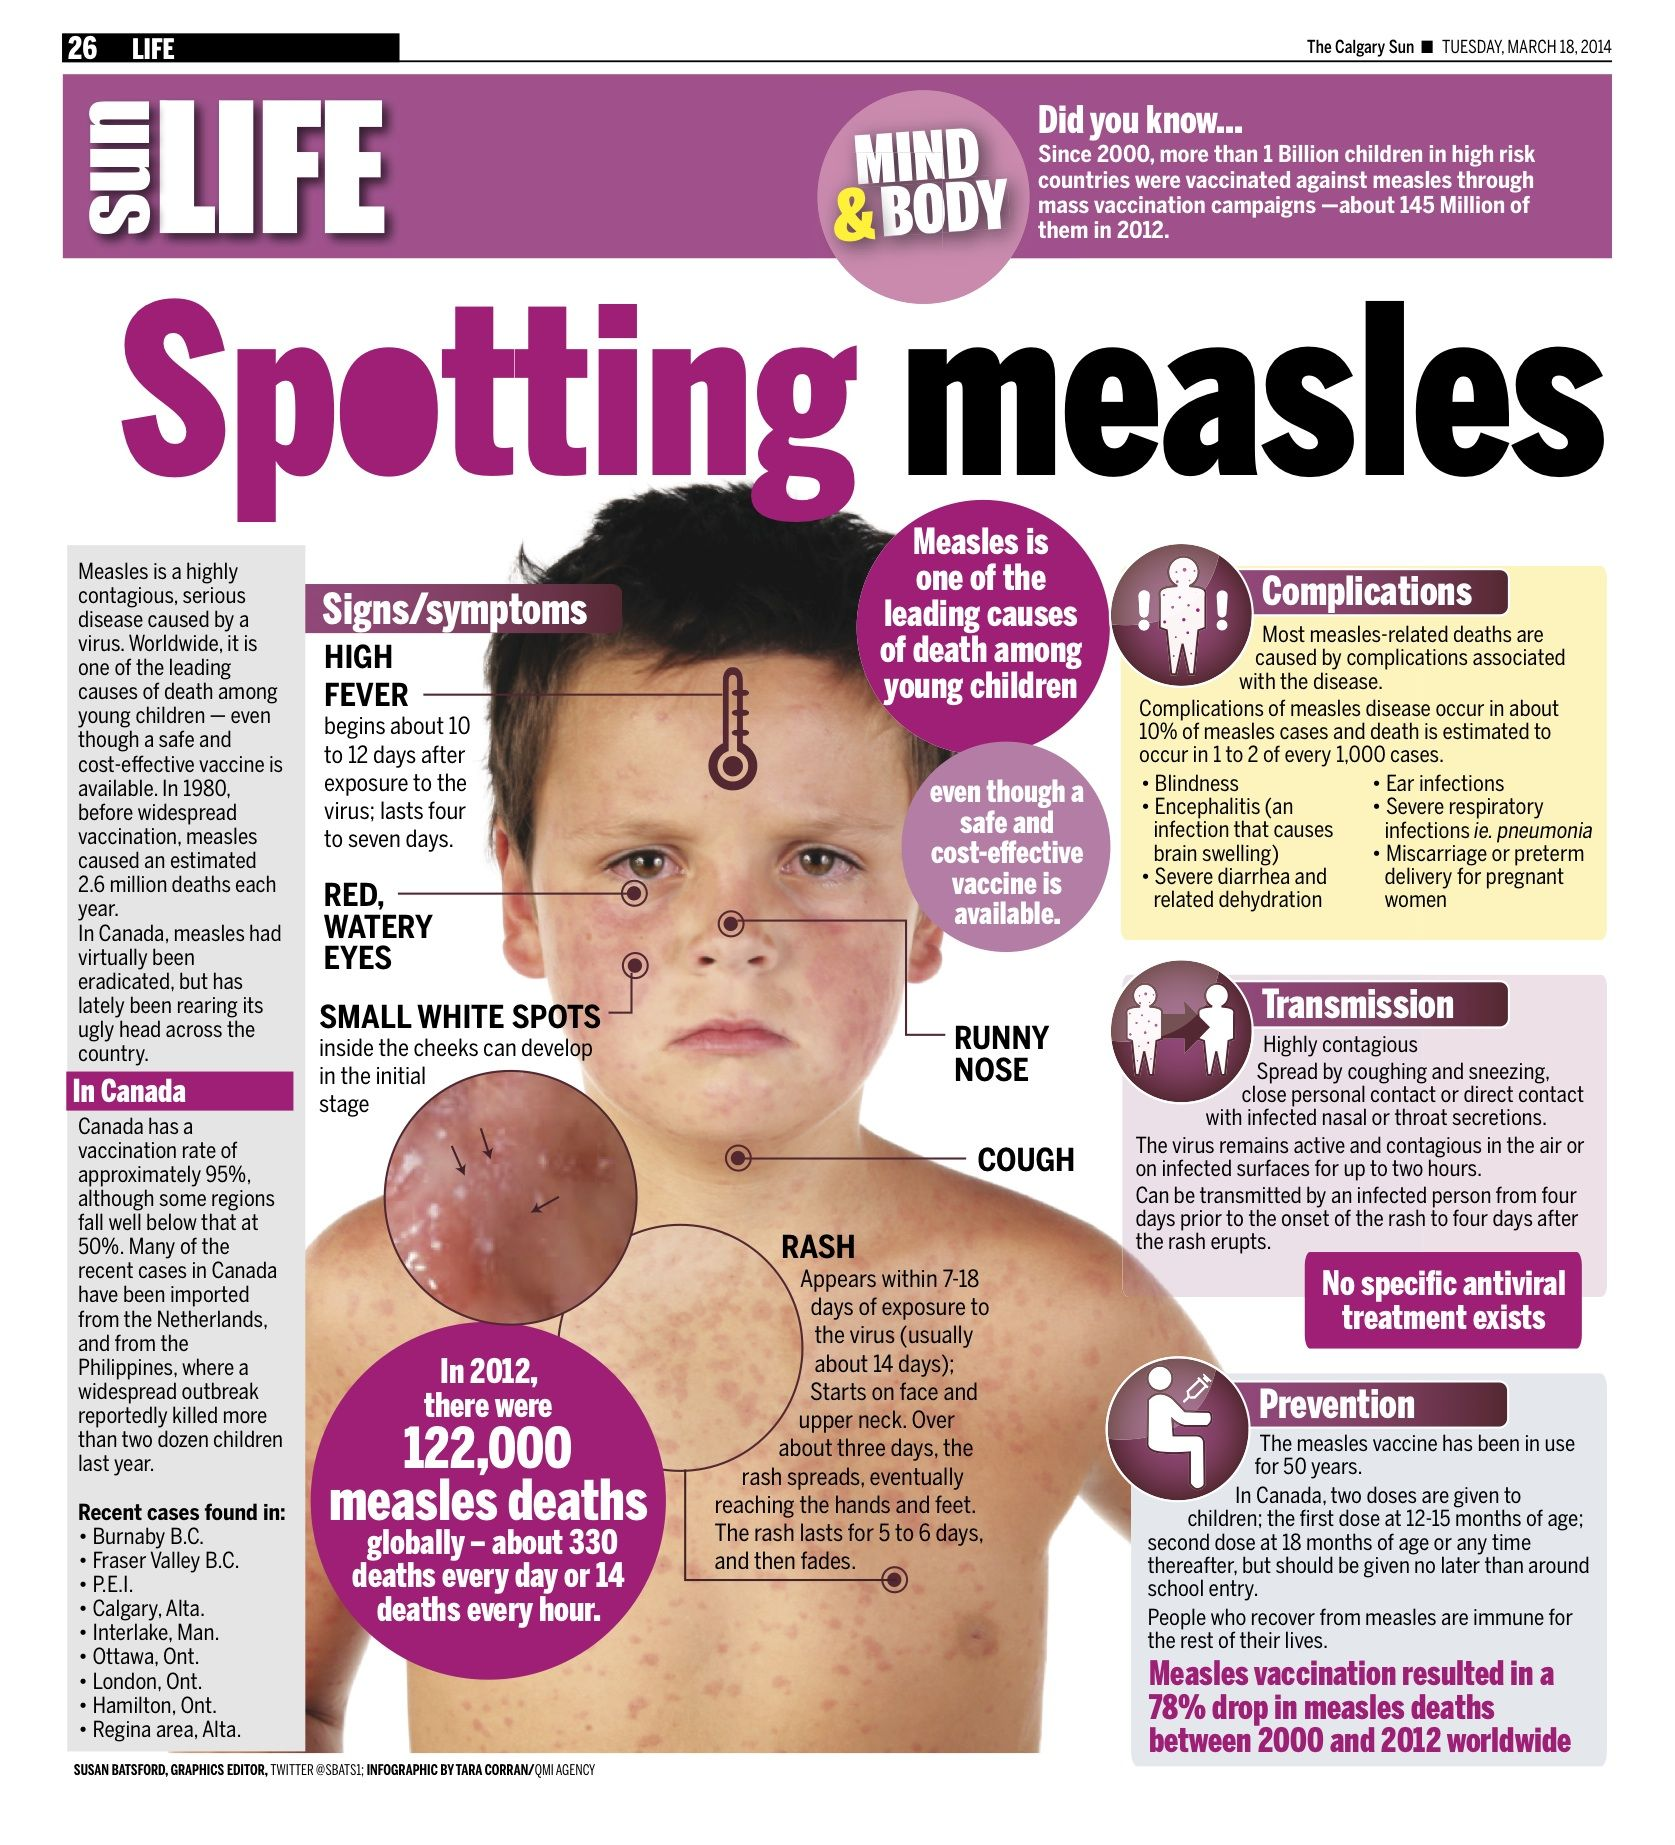 Measles is a highly contagious, serious disease caused by ...